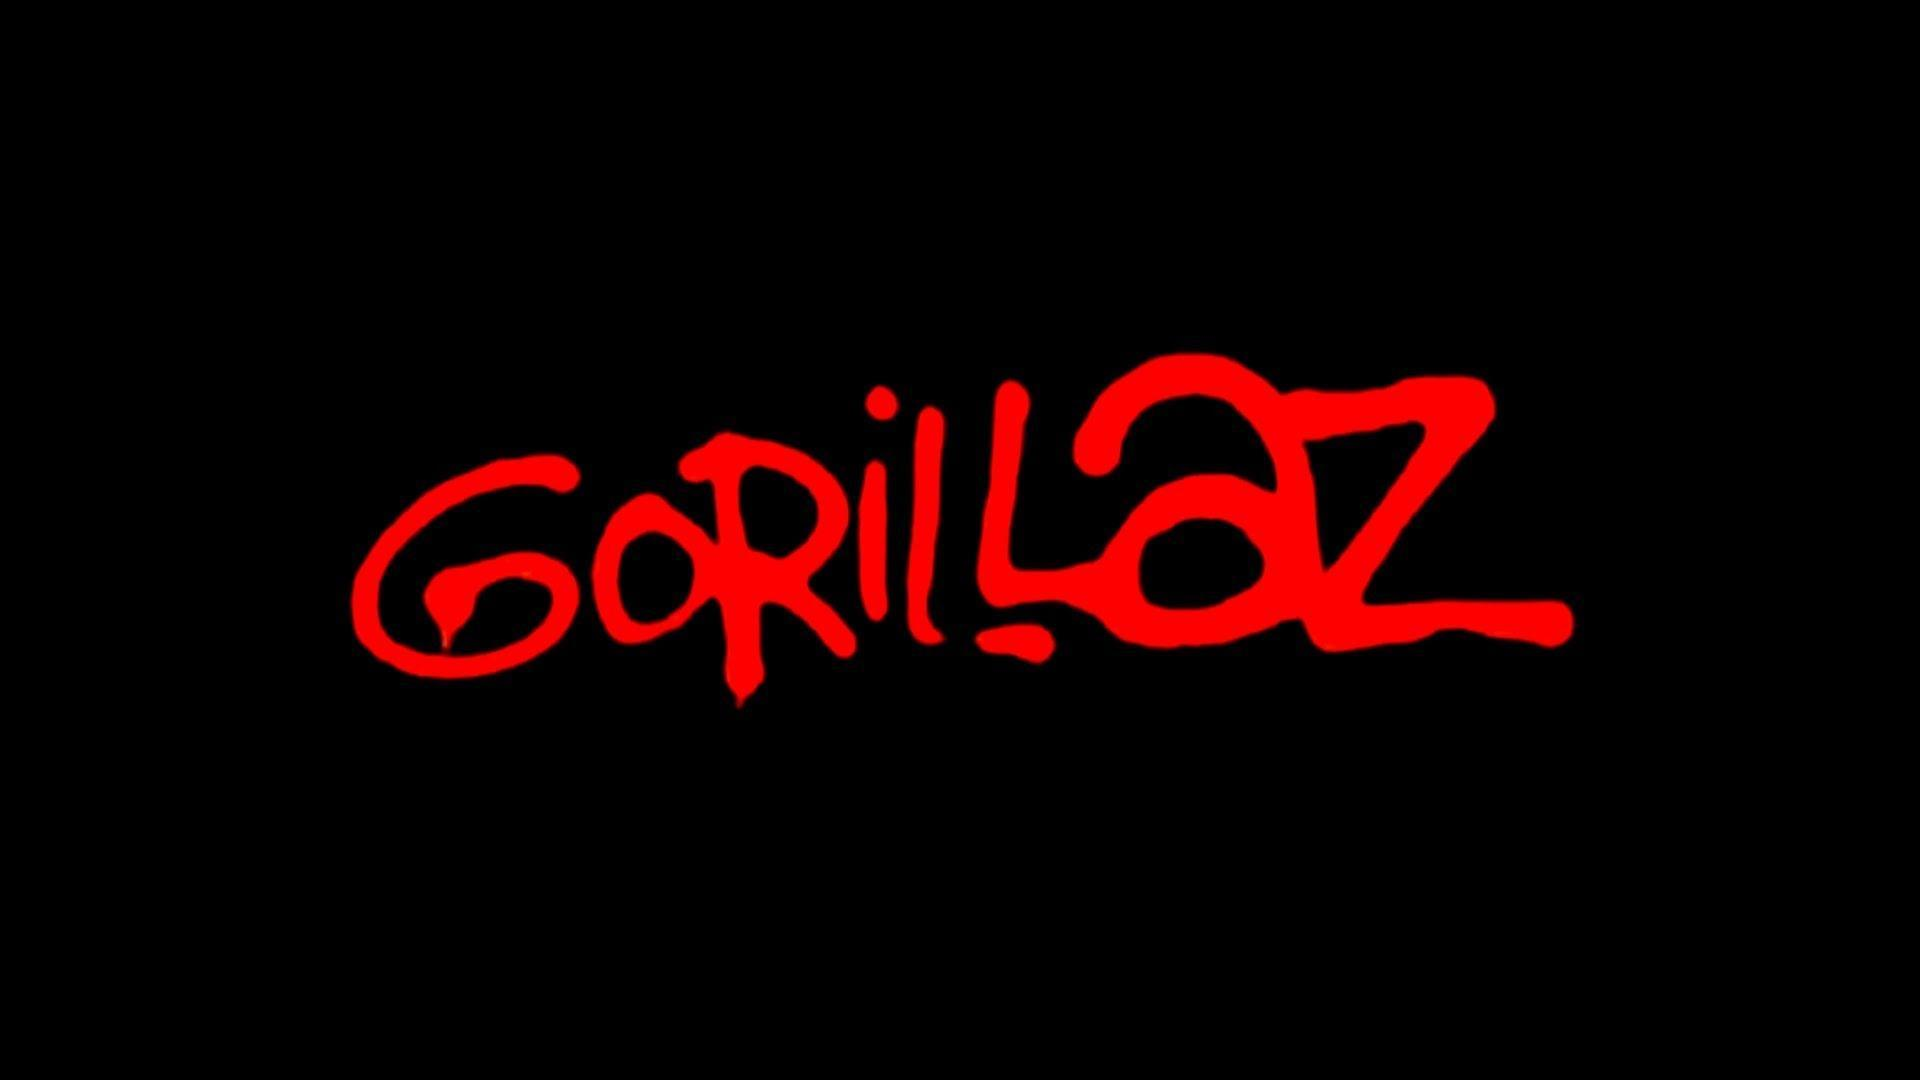 Which Gorillaz member are you?